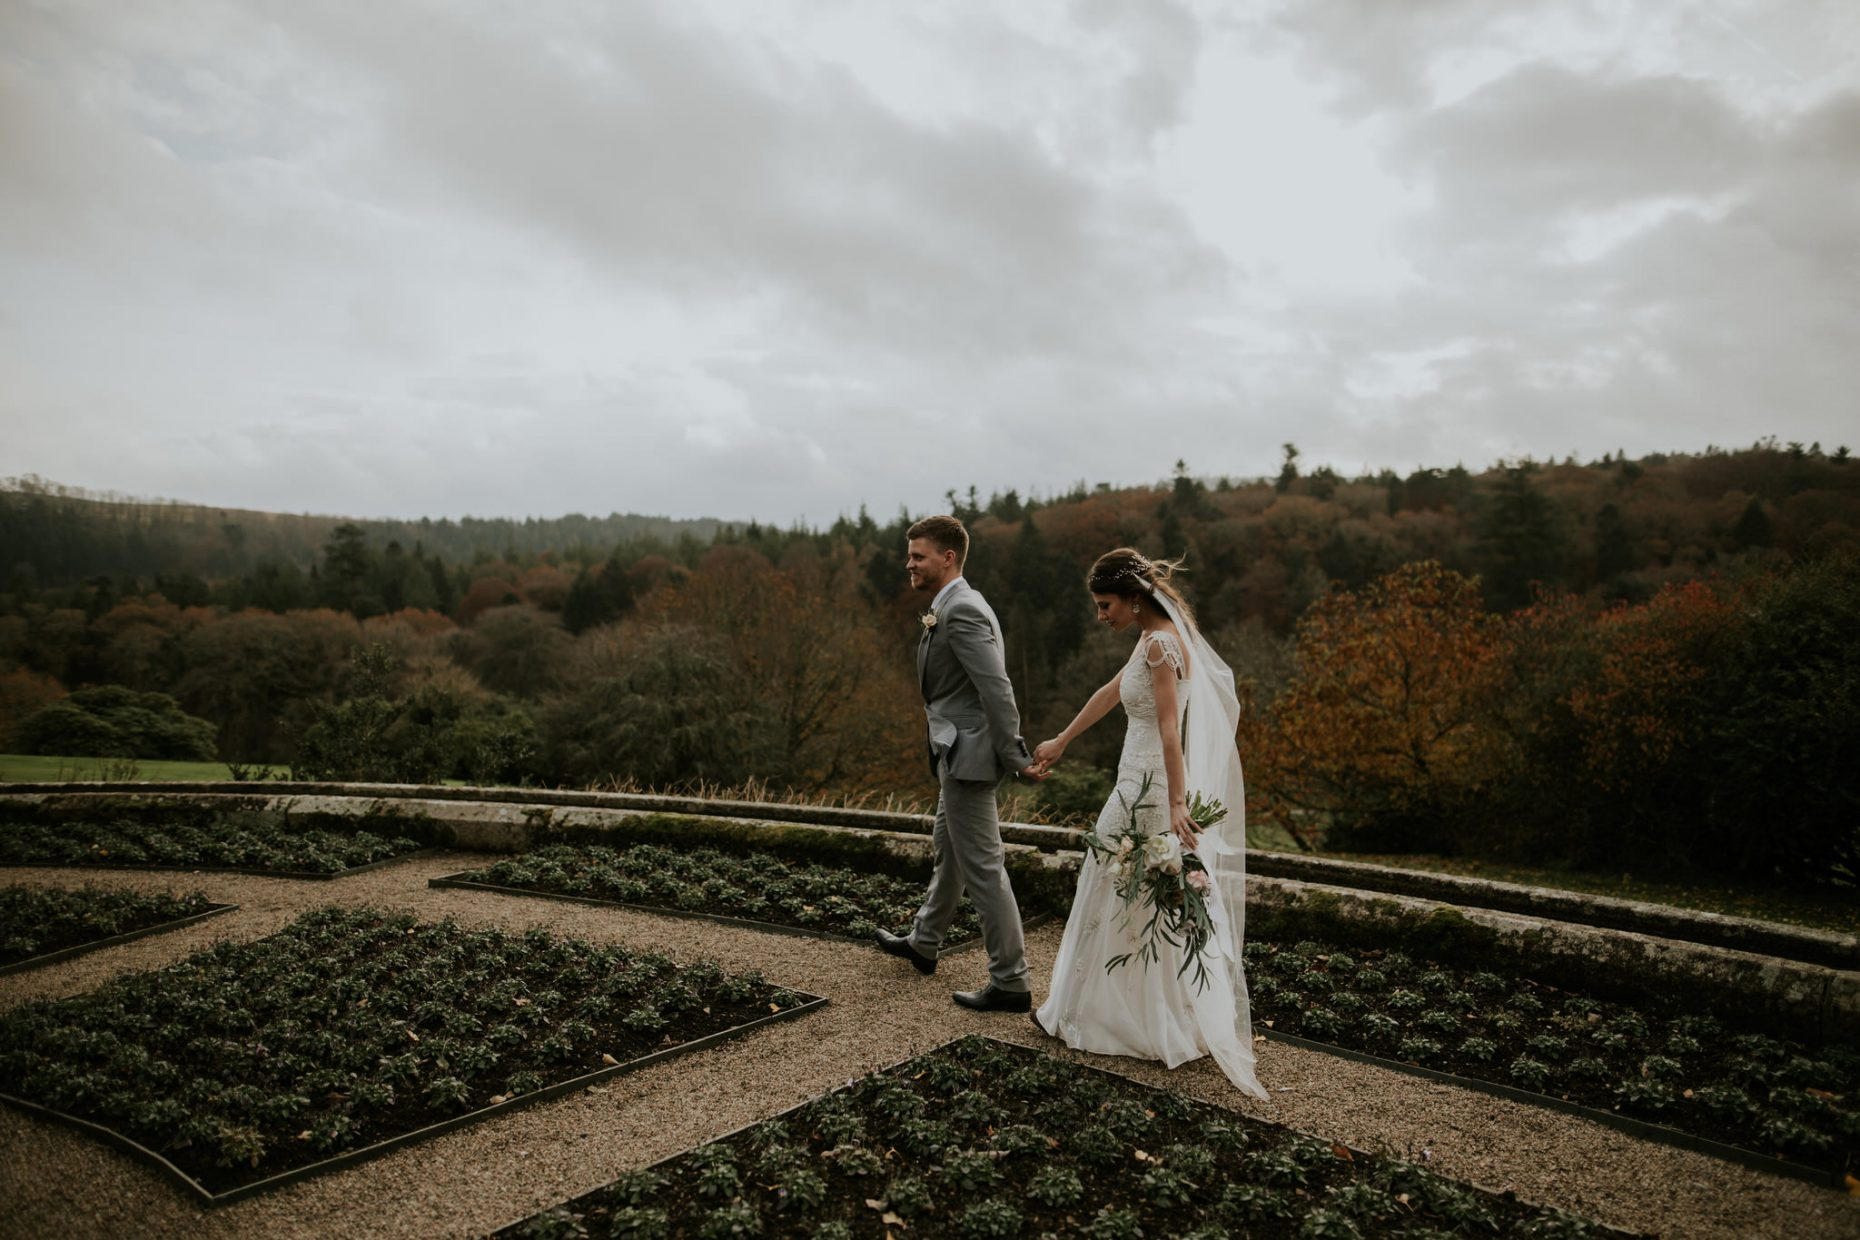 groom holds brides hand and leads her through a beautiful manicured ancient garden as the wind blows and gently catches her hair and veil